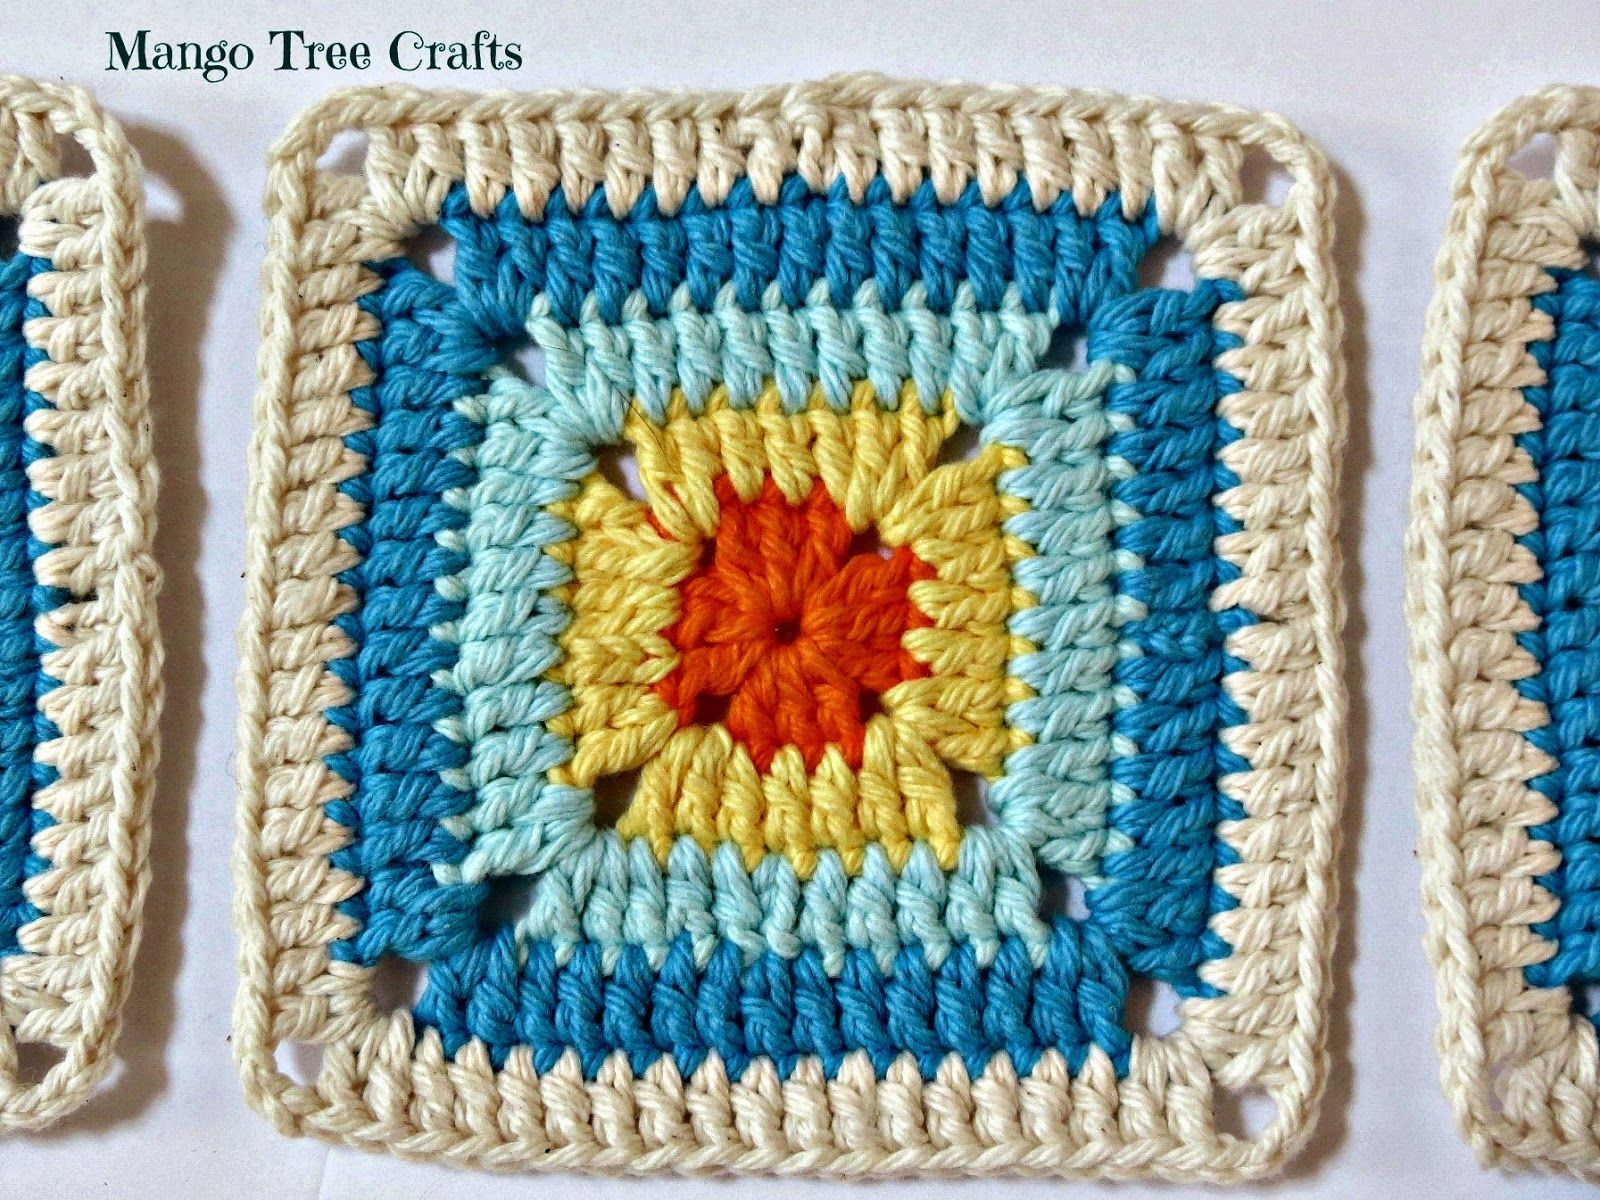 Crochet square pattern a yarn affair knitting and crocheting free crochet square pattern i would like to share this free crochet square pattern with you with all the fall projects popping bankloansurffo Image collections